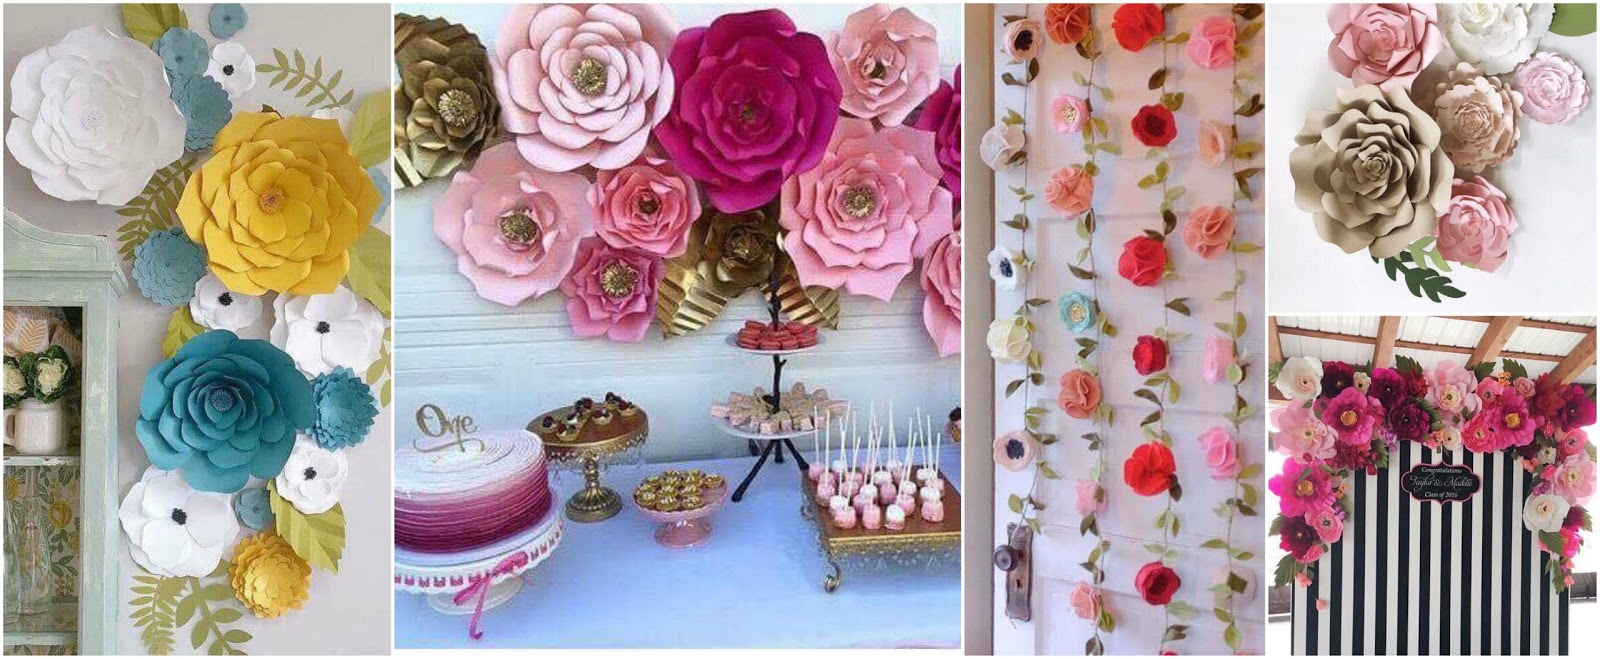 18 ideas f ciles y hermosas para decorar con flores de for Rosas de decoracion